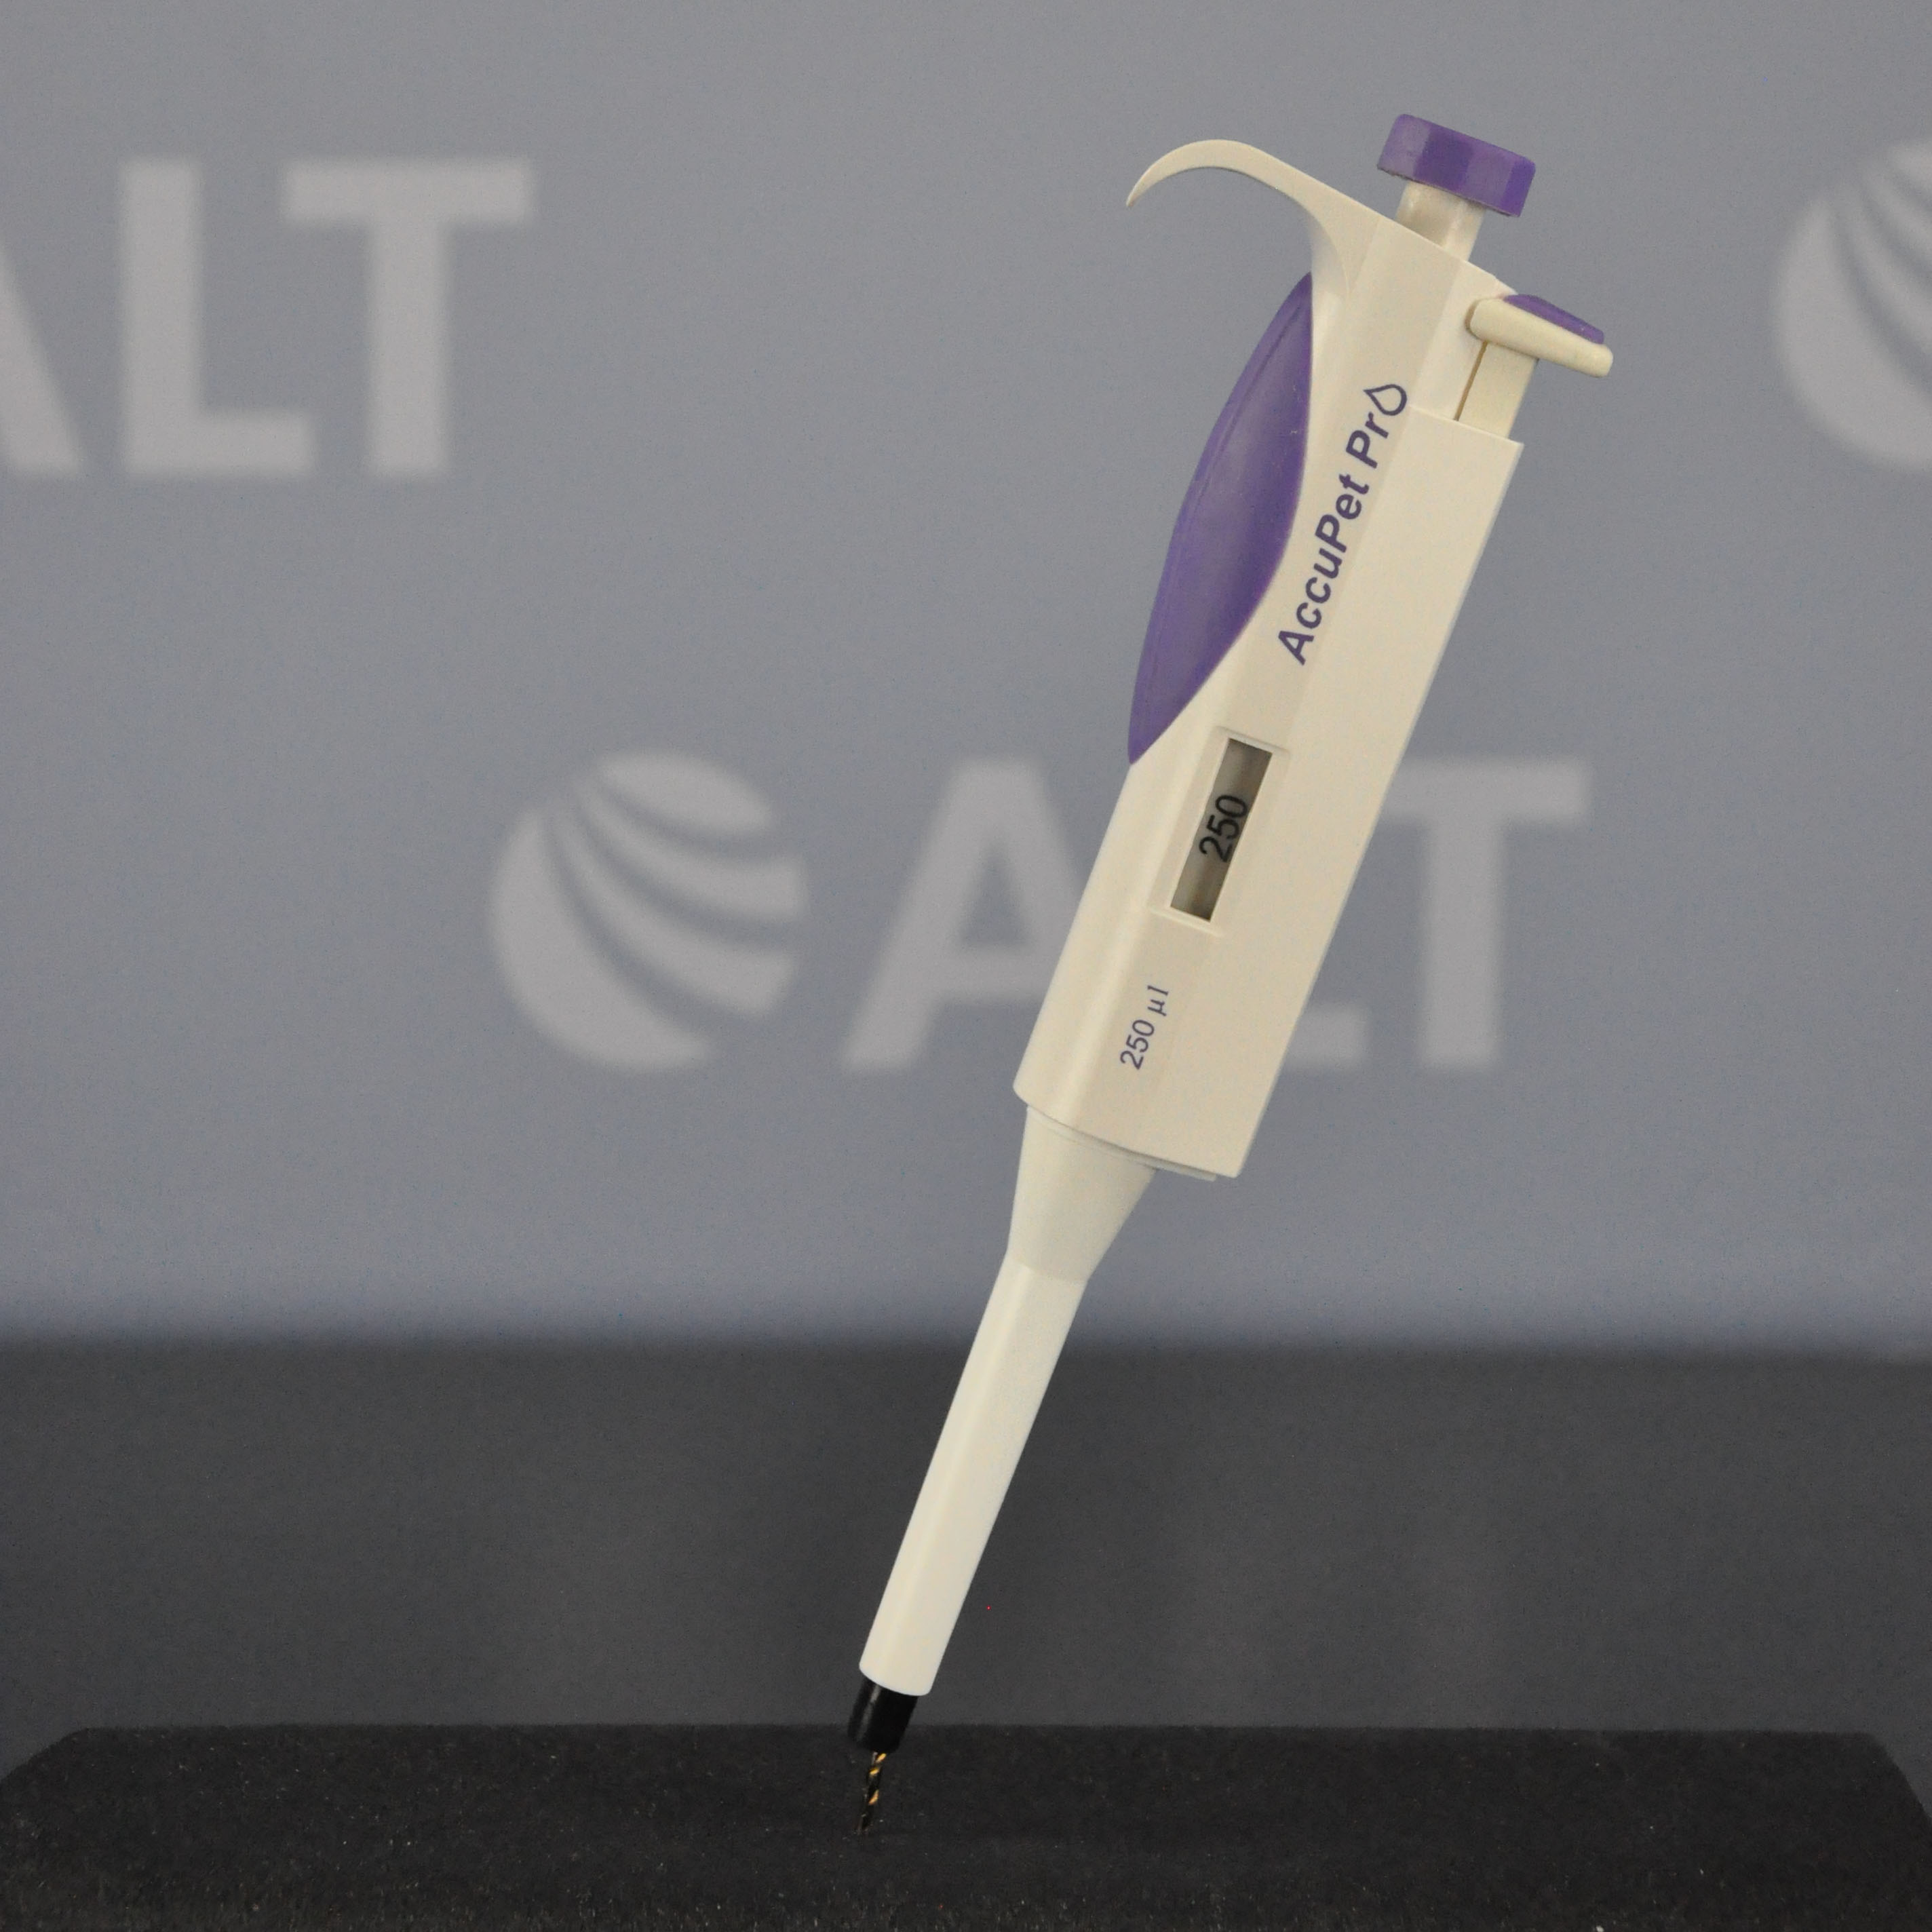 Accupet 250 uL Pro Pipette Image